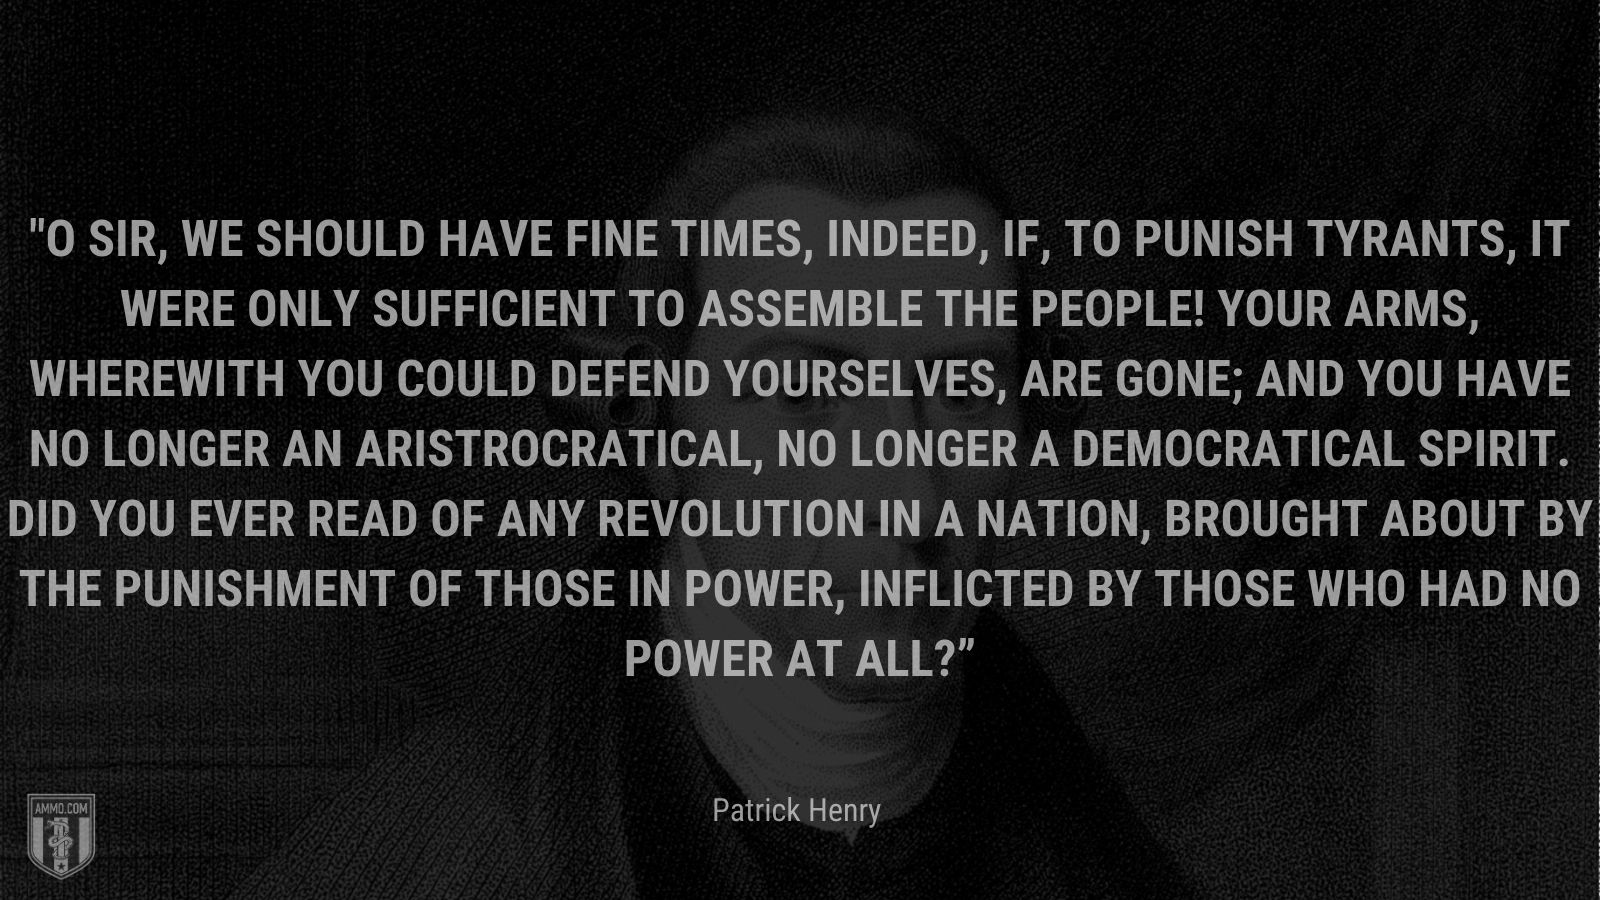 """""""O sir, we should have fine times, indeed, if, to punish tyrants, it were only sufficient to assemble the people! Your arms, wherewith you could defend yourselves, are gone; and you have no longer an aristrocratical, no longer a democratical spirit. Did you ever read of any revolution in a nation, brought about by the punishment of those in power, inflicted by those who had no power at all?"""" - Patrick Henry"""